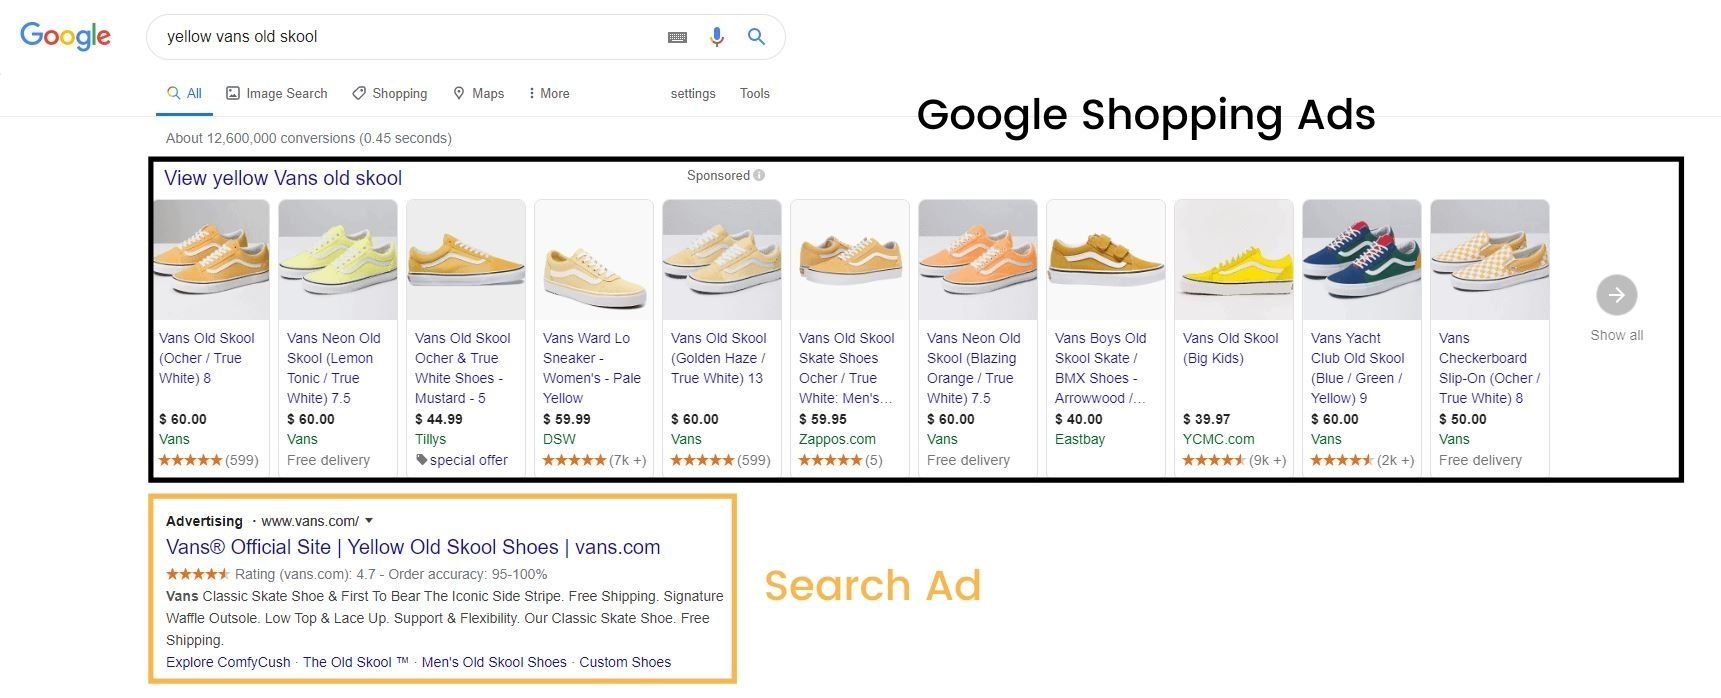 Google Shopping ads vs. Search ads